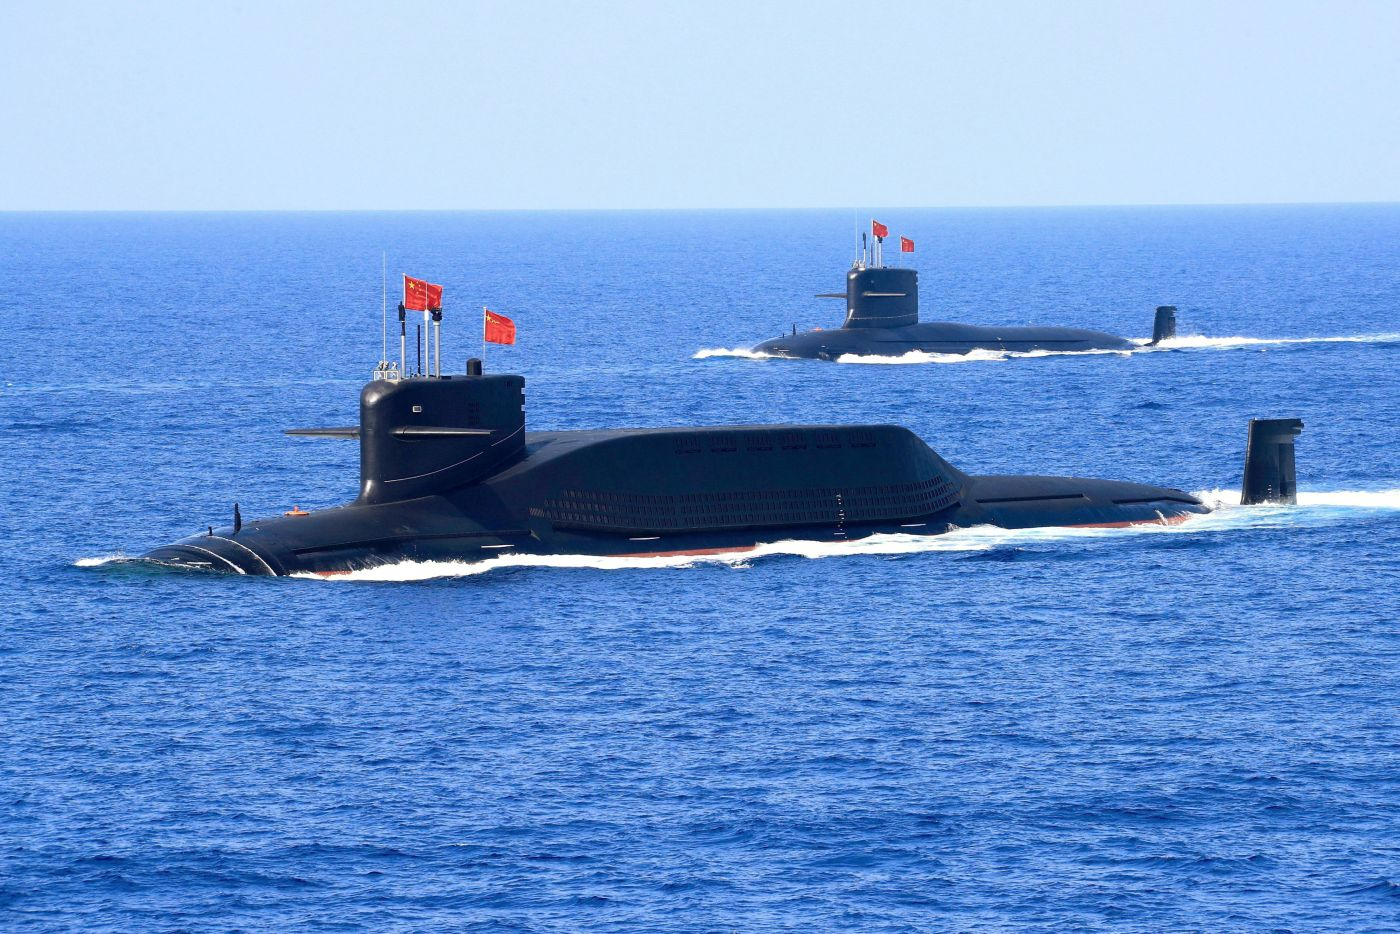 Nuclear-powered Type 094A Jin-class ballistic missile submarine of the Chinese People's Liberation Army (PLA) Navy is seen during a military display in the South China Sea